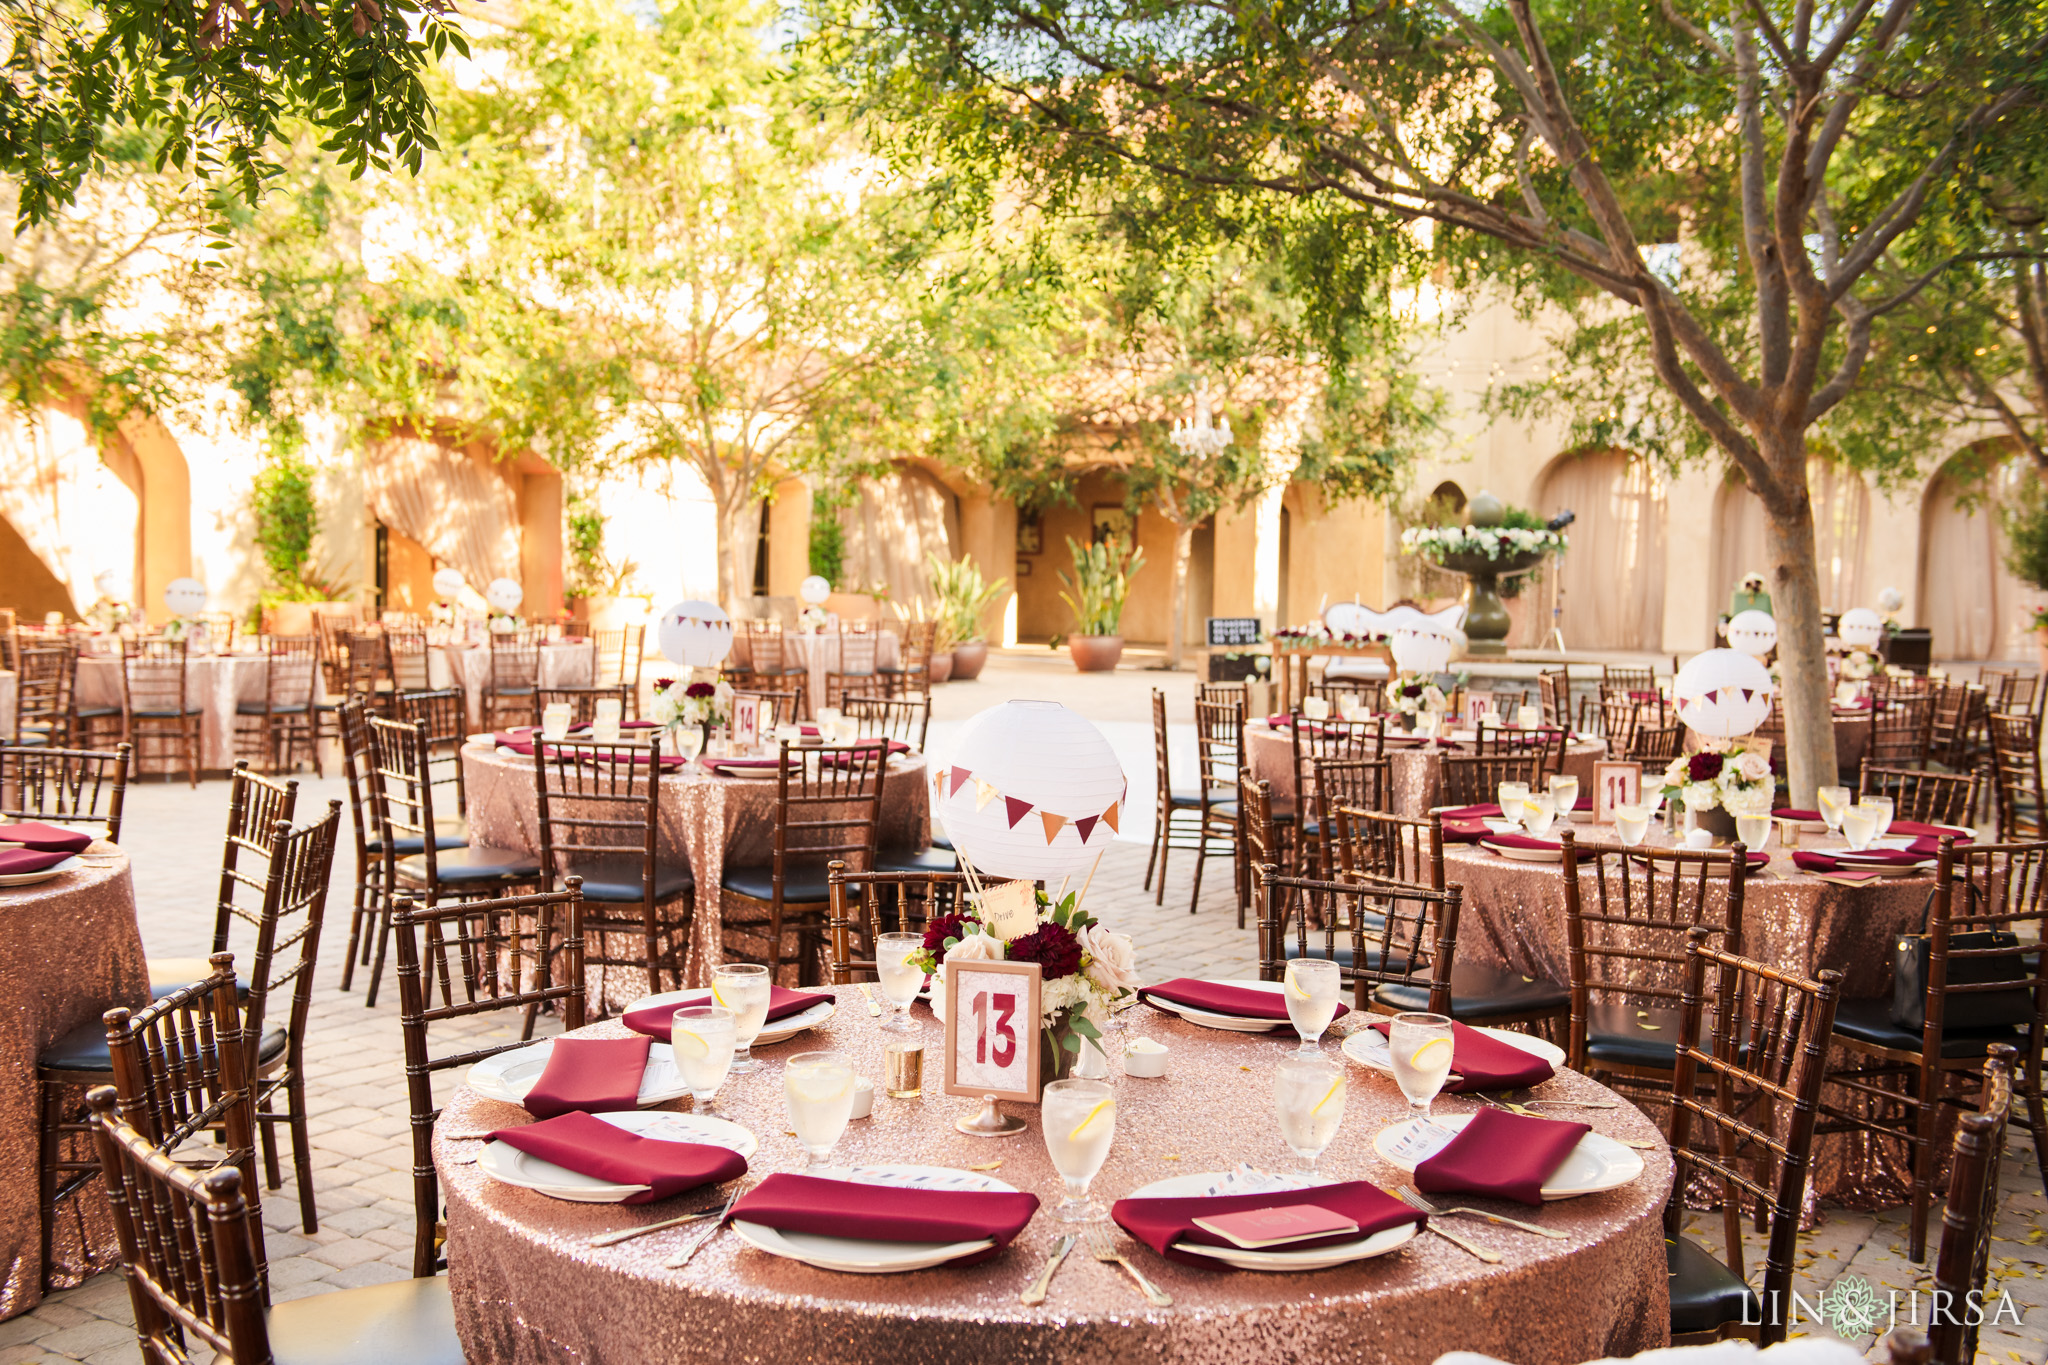 46 serra plaza san juan capistrano travel theme wedding photography